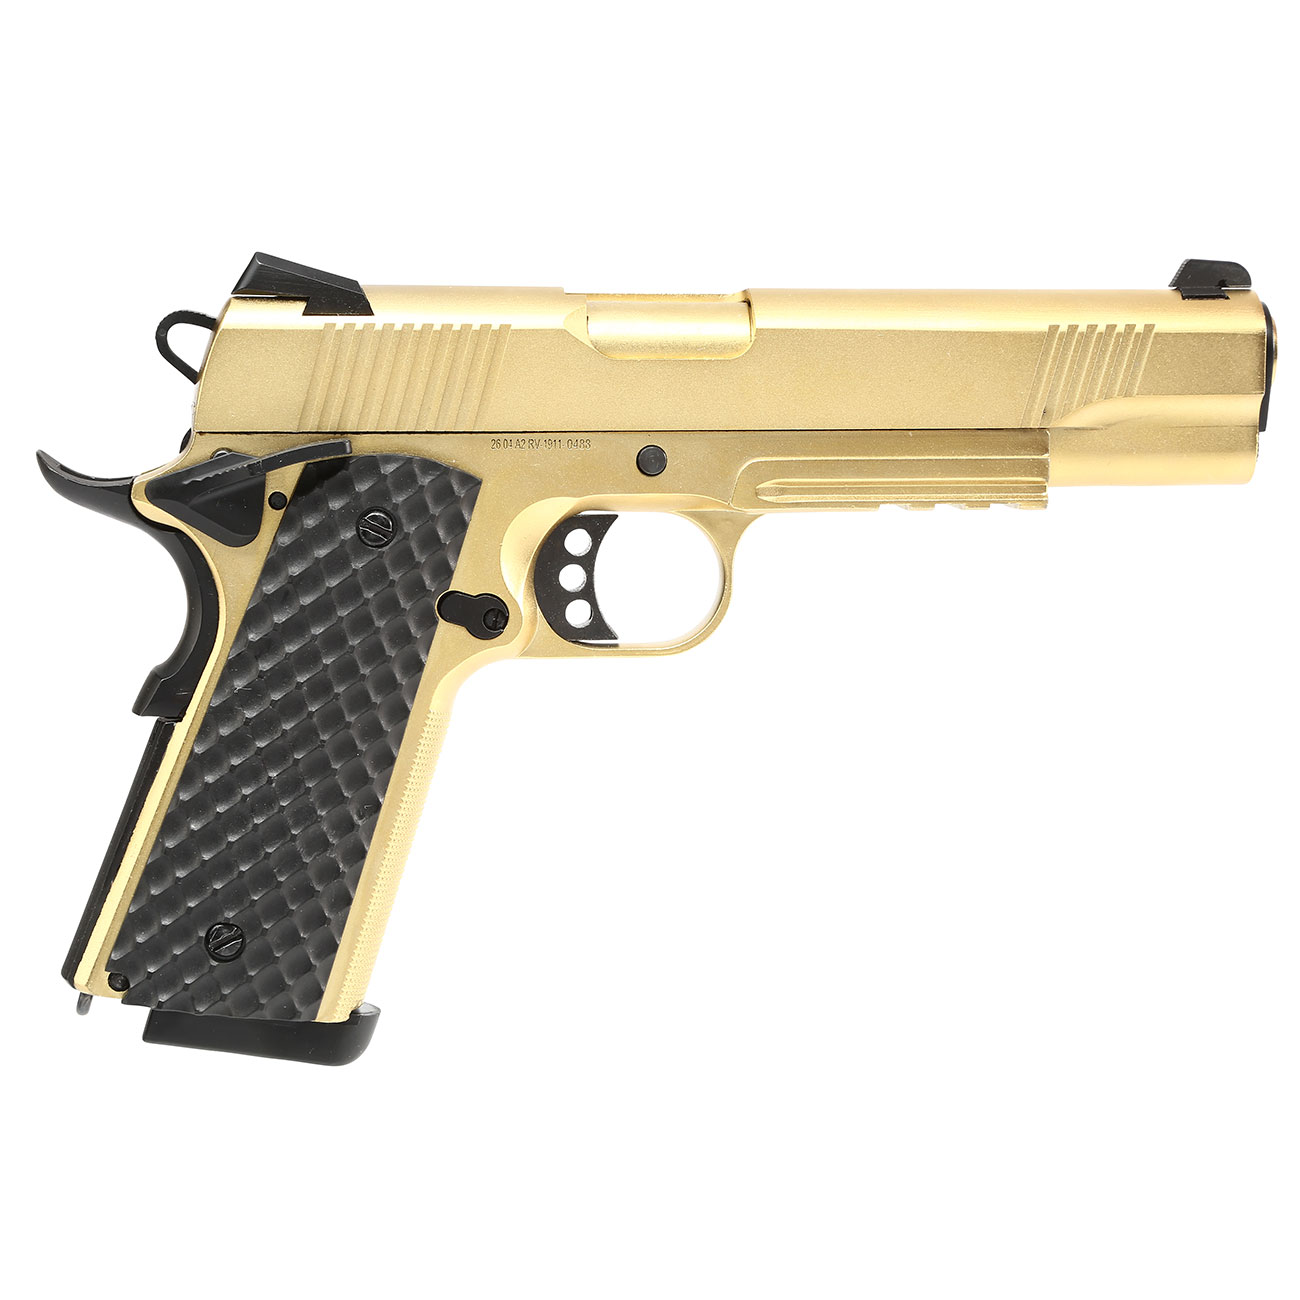 Nuprol Raven M1911 MEU Railed Vollmetall GBB 6mm BB gold 3